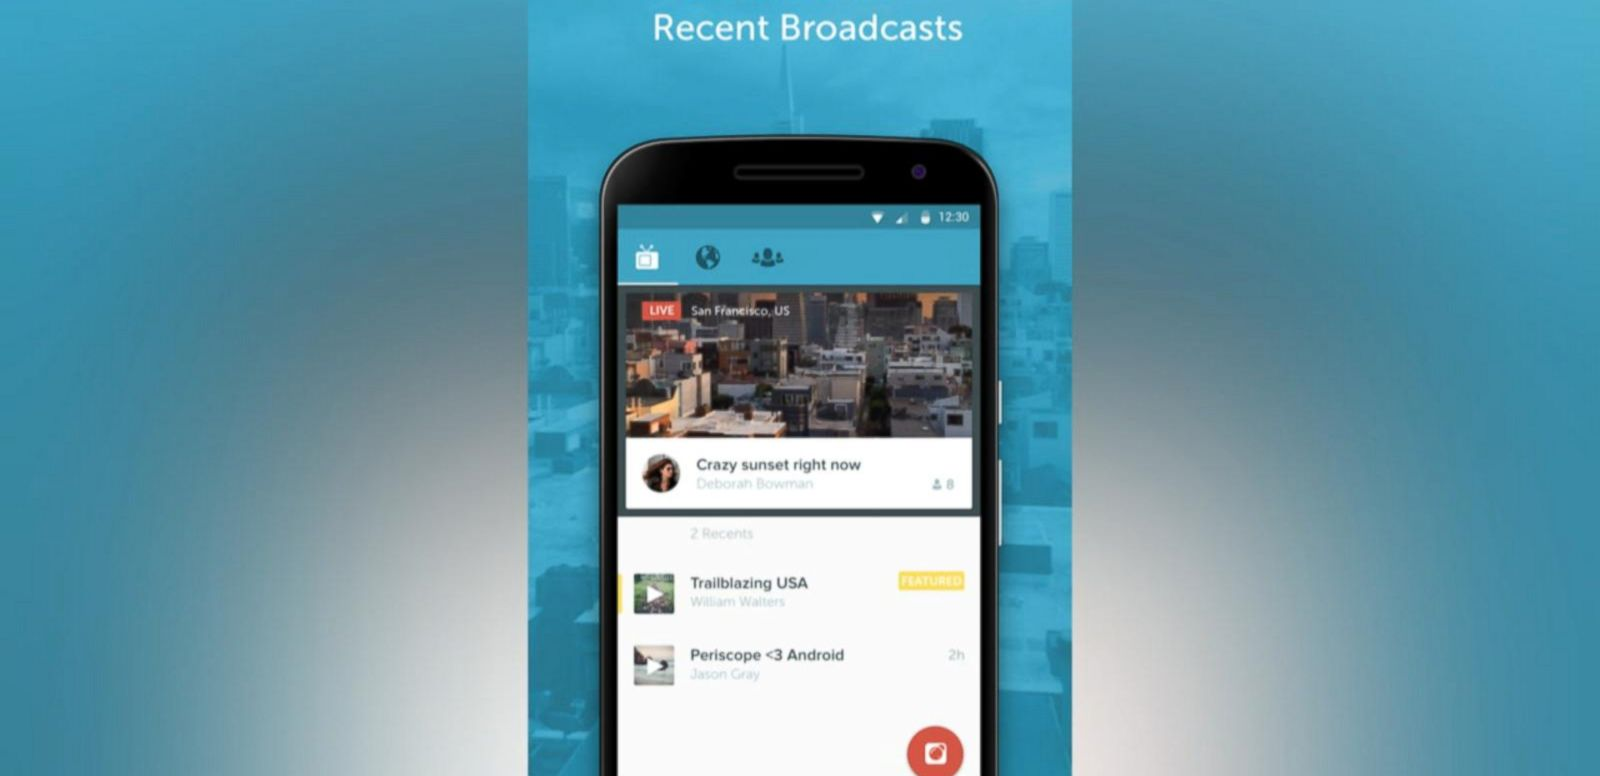 Twitter's Periscope Arrives on Android